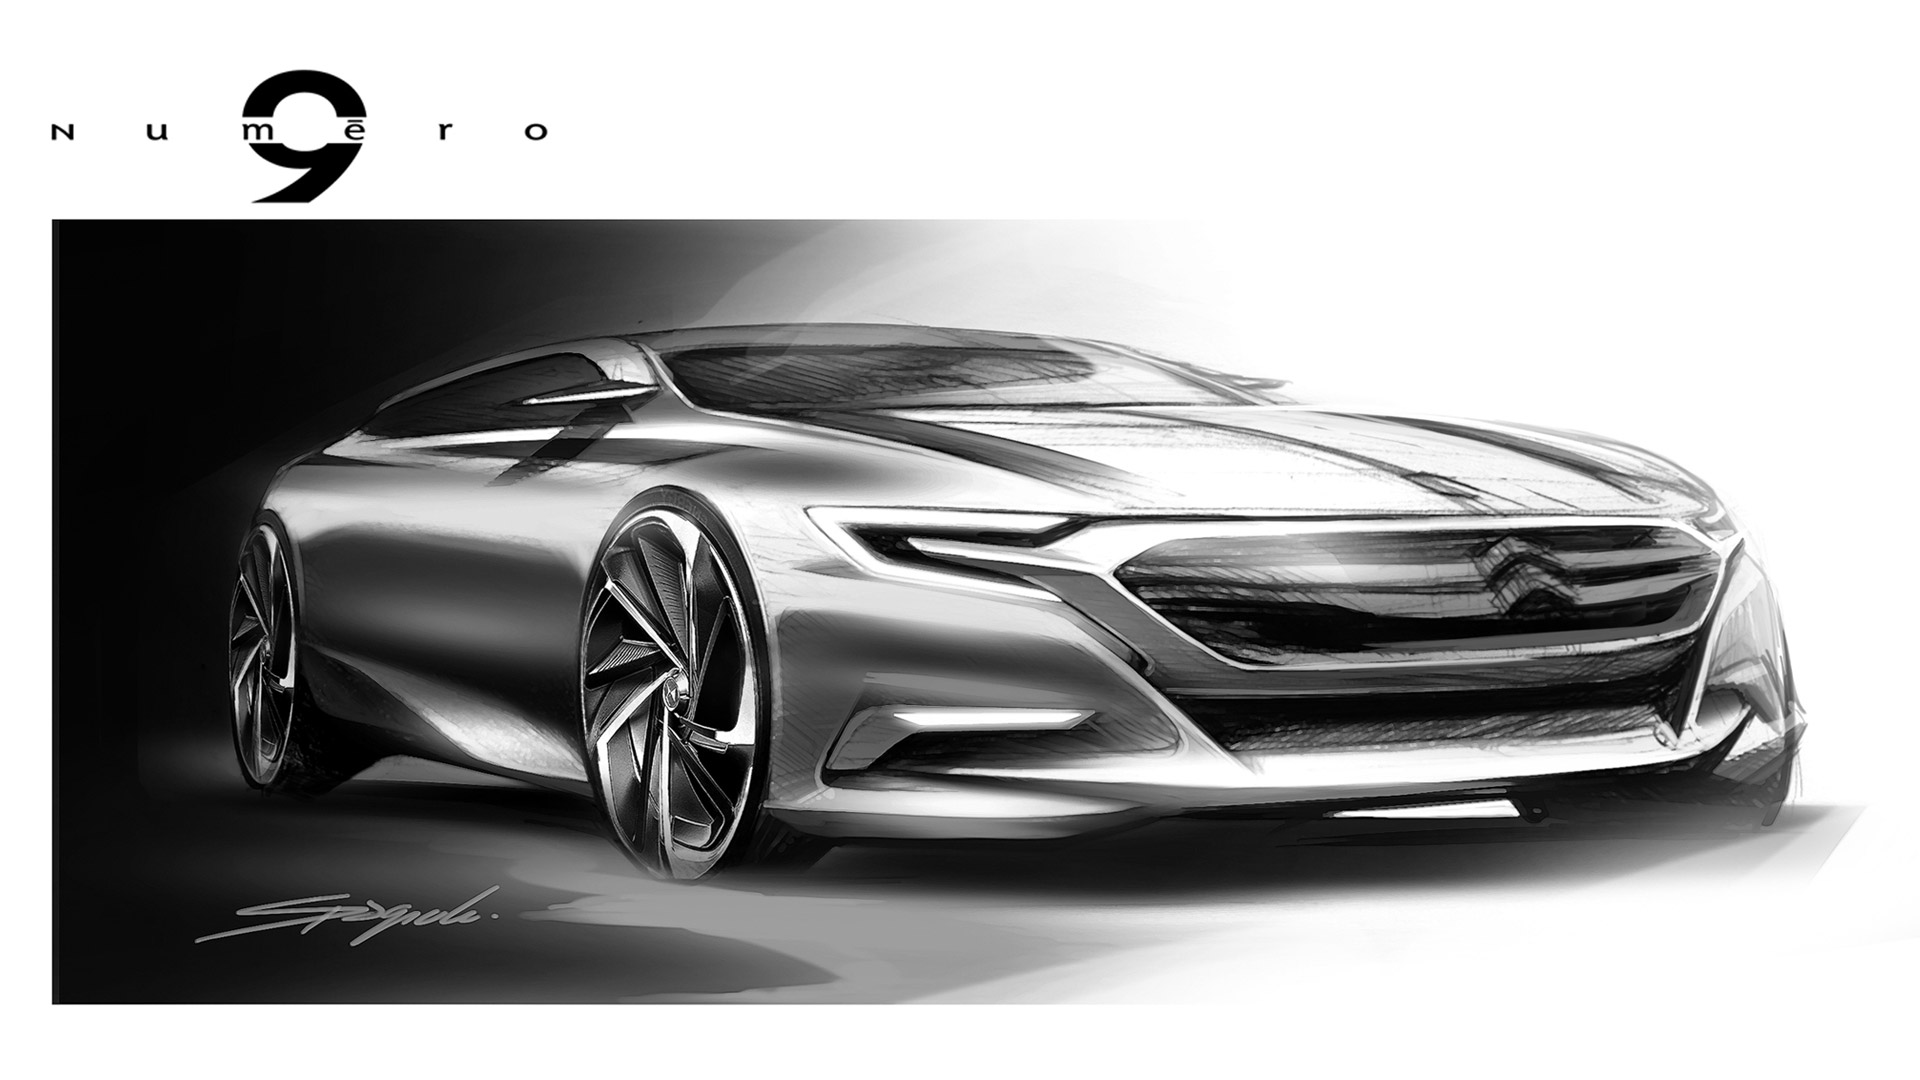 Citroen Numero 9 Concept Design Sketch Car Body Design